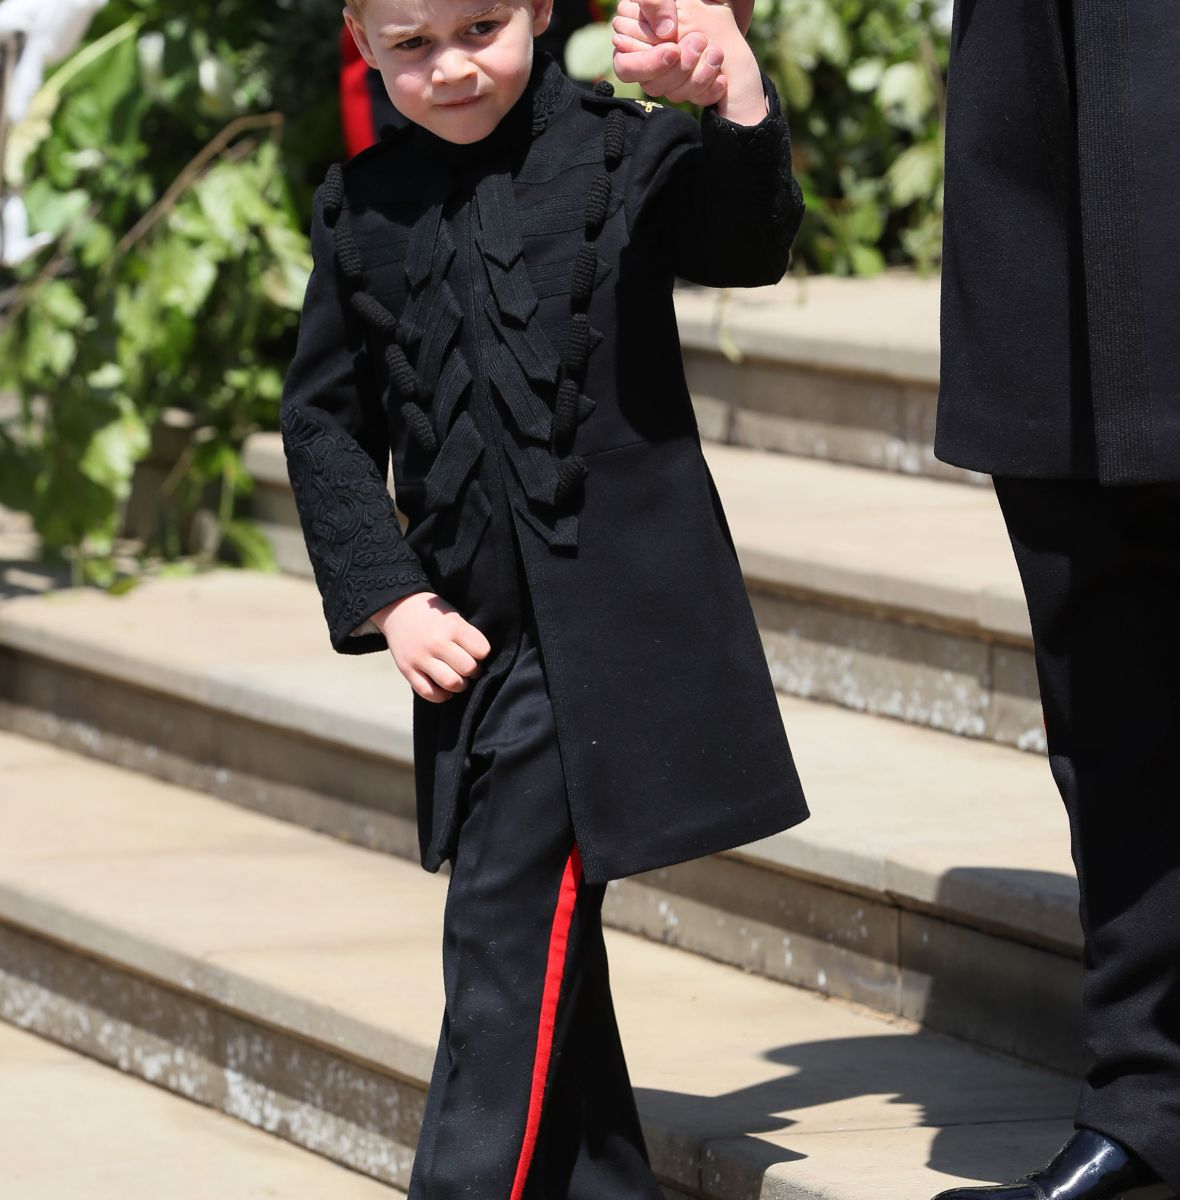 prince george royal wedding getty images